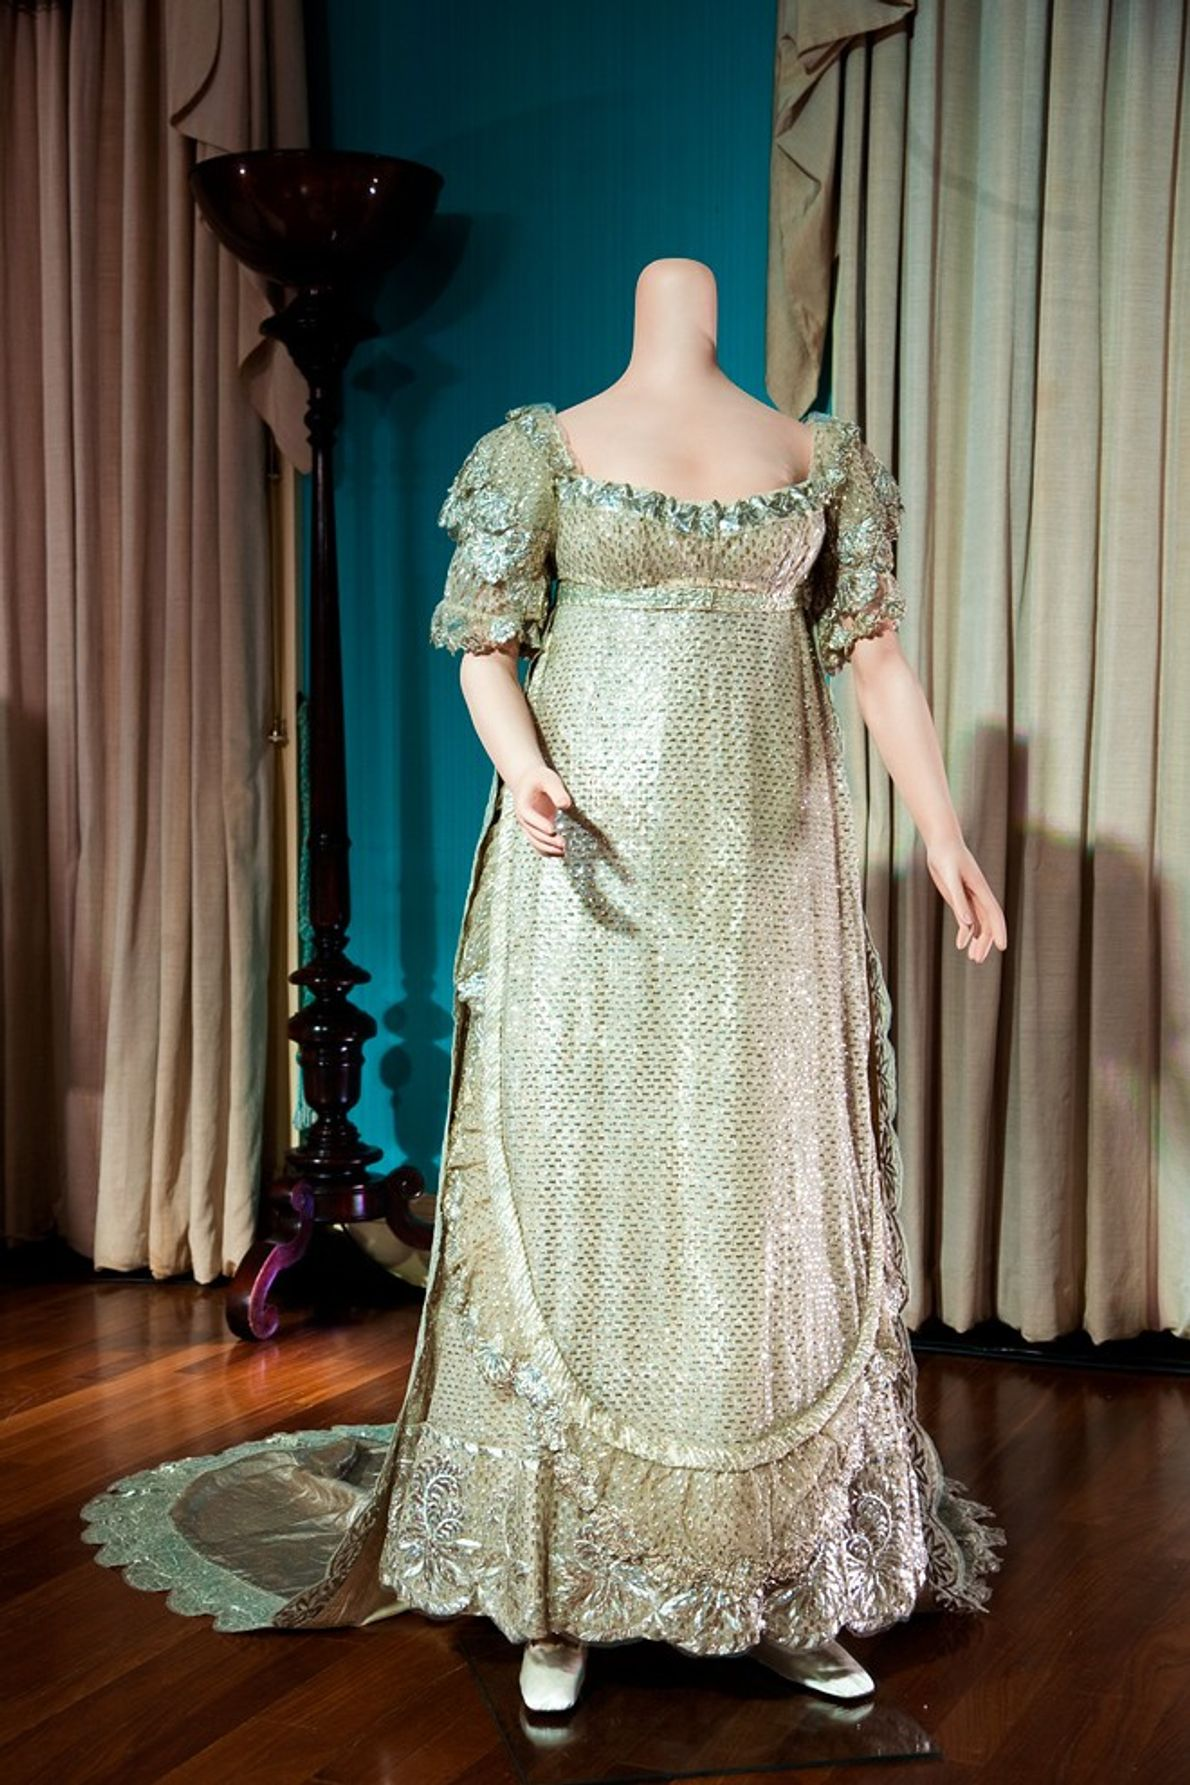 Shot through with silver thread, the wedding dress worn in 1816 by Princess Charlotte—only child of ...